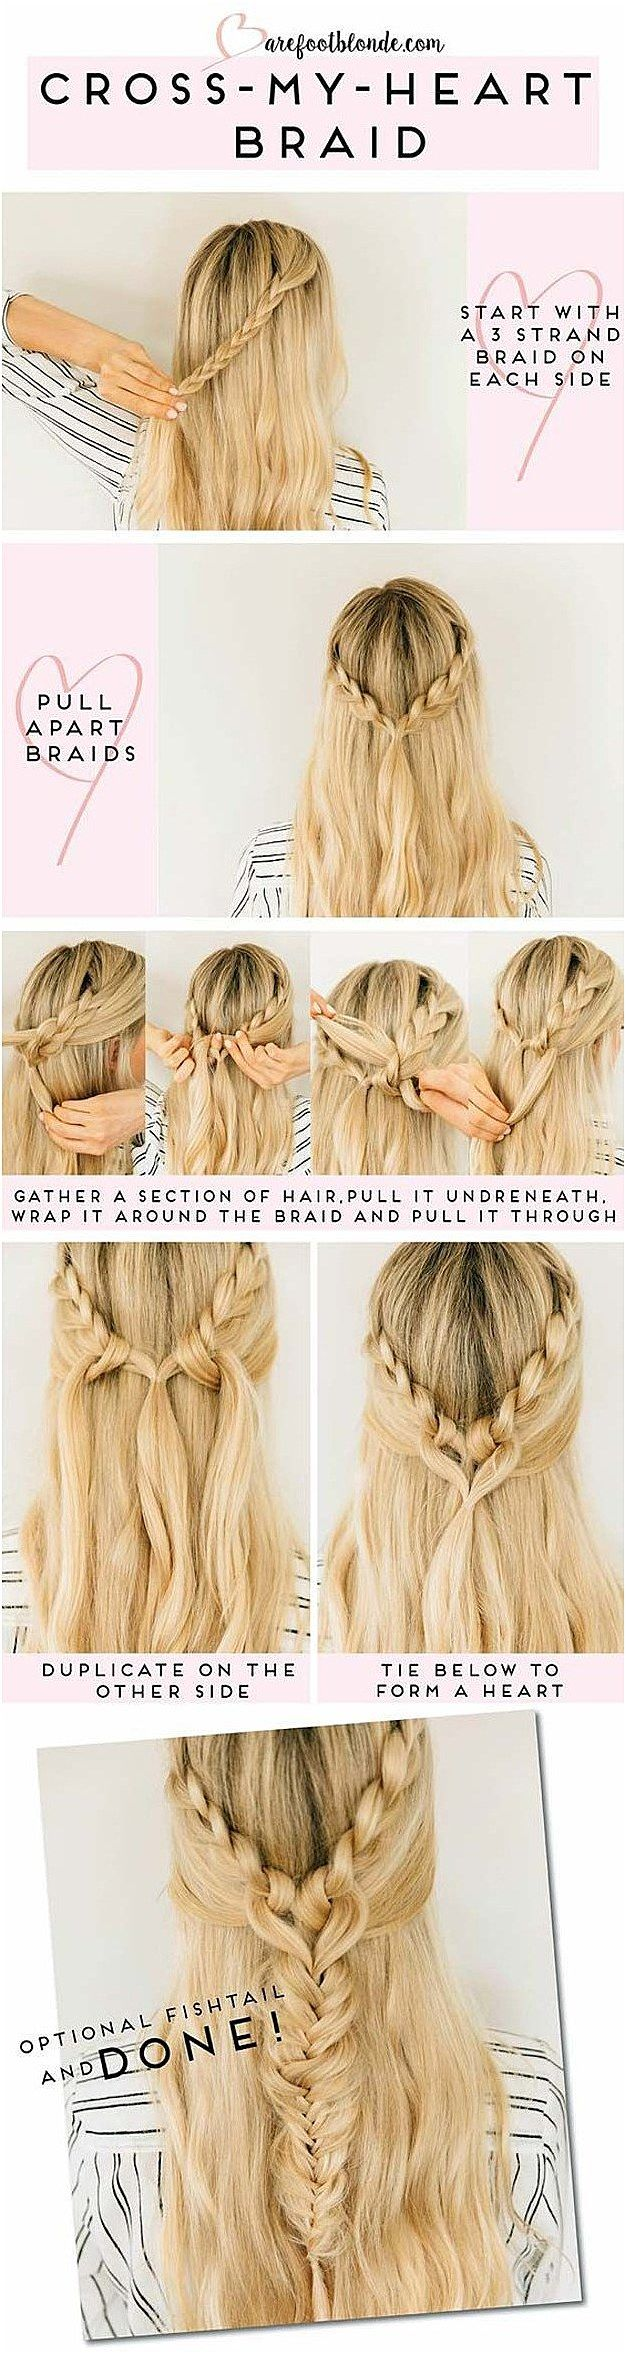 Photo of Best Hair Braiding Tutorials – Cross My Heart Braid – Easy S…